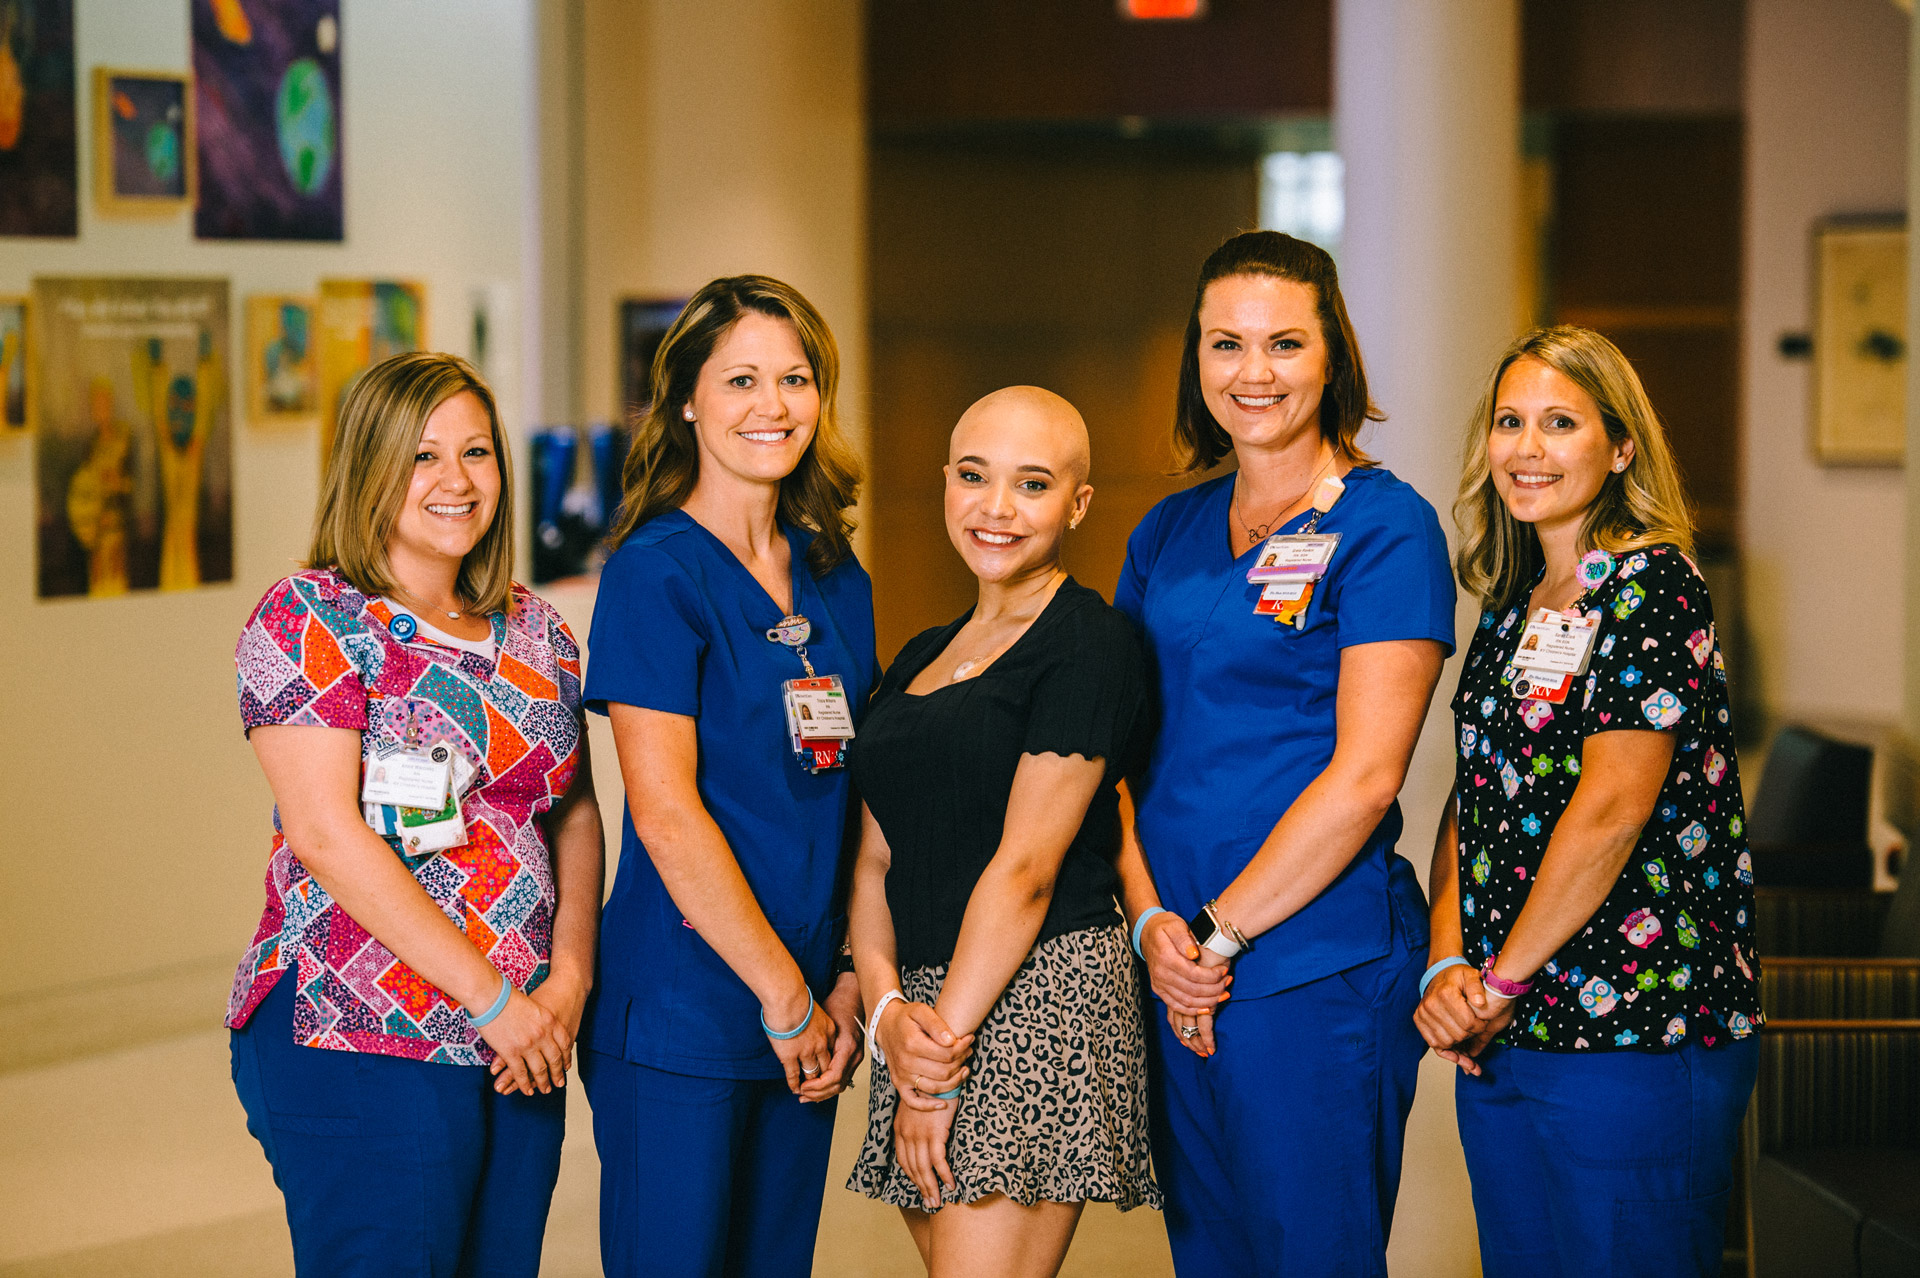 Savannah poses for a photo with four nurses from her care team.